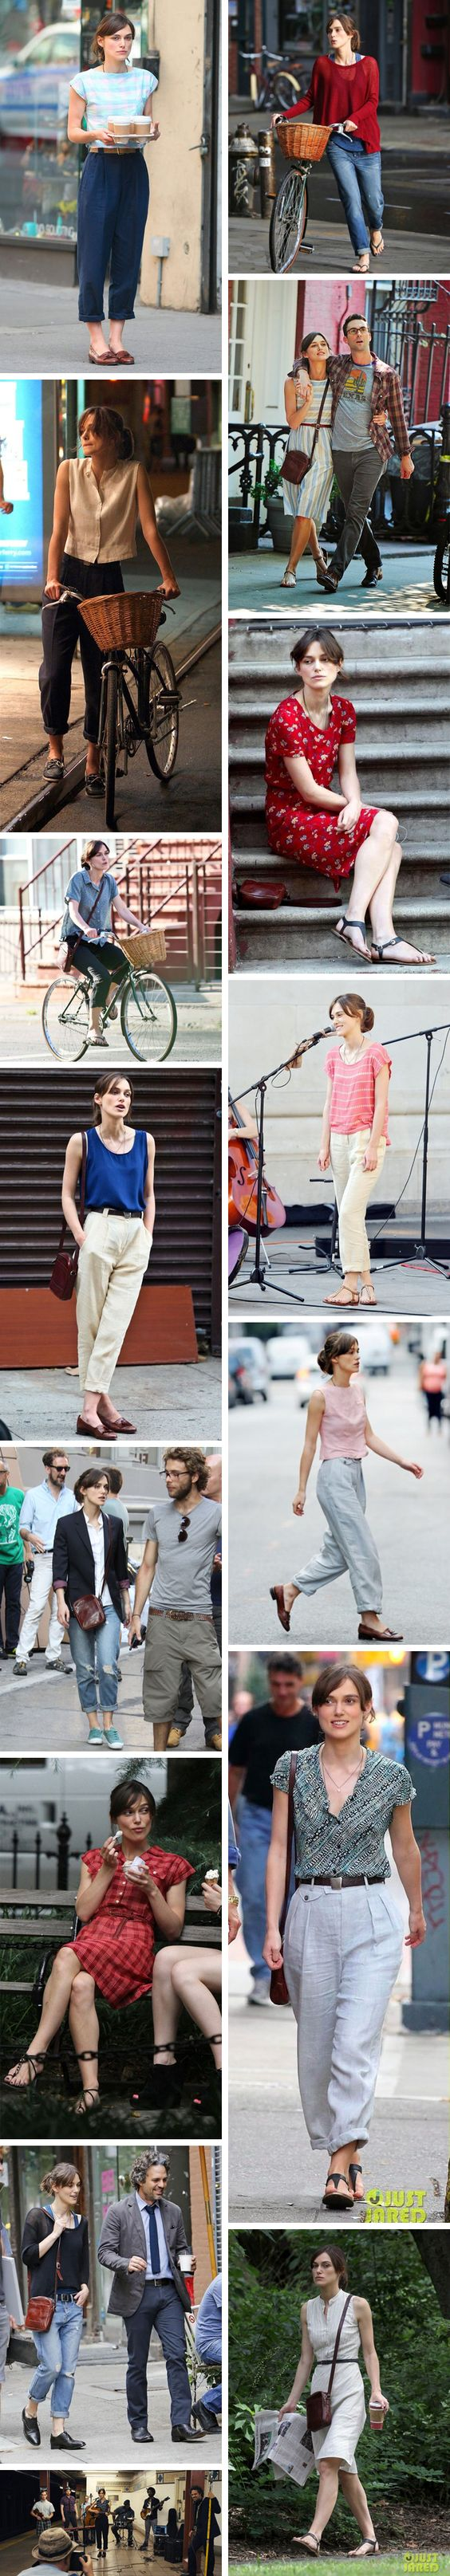 Gingerly Witty Friday LinkFest Begin Again wardrobe Keira Knightly